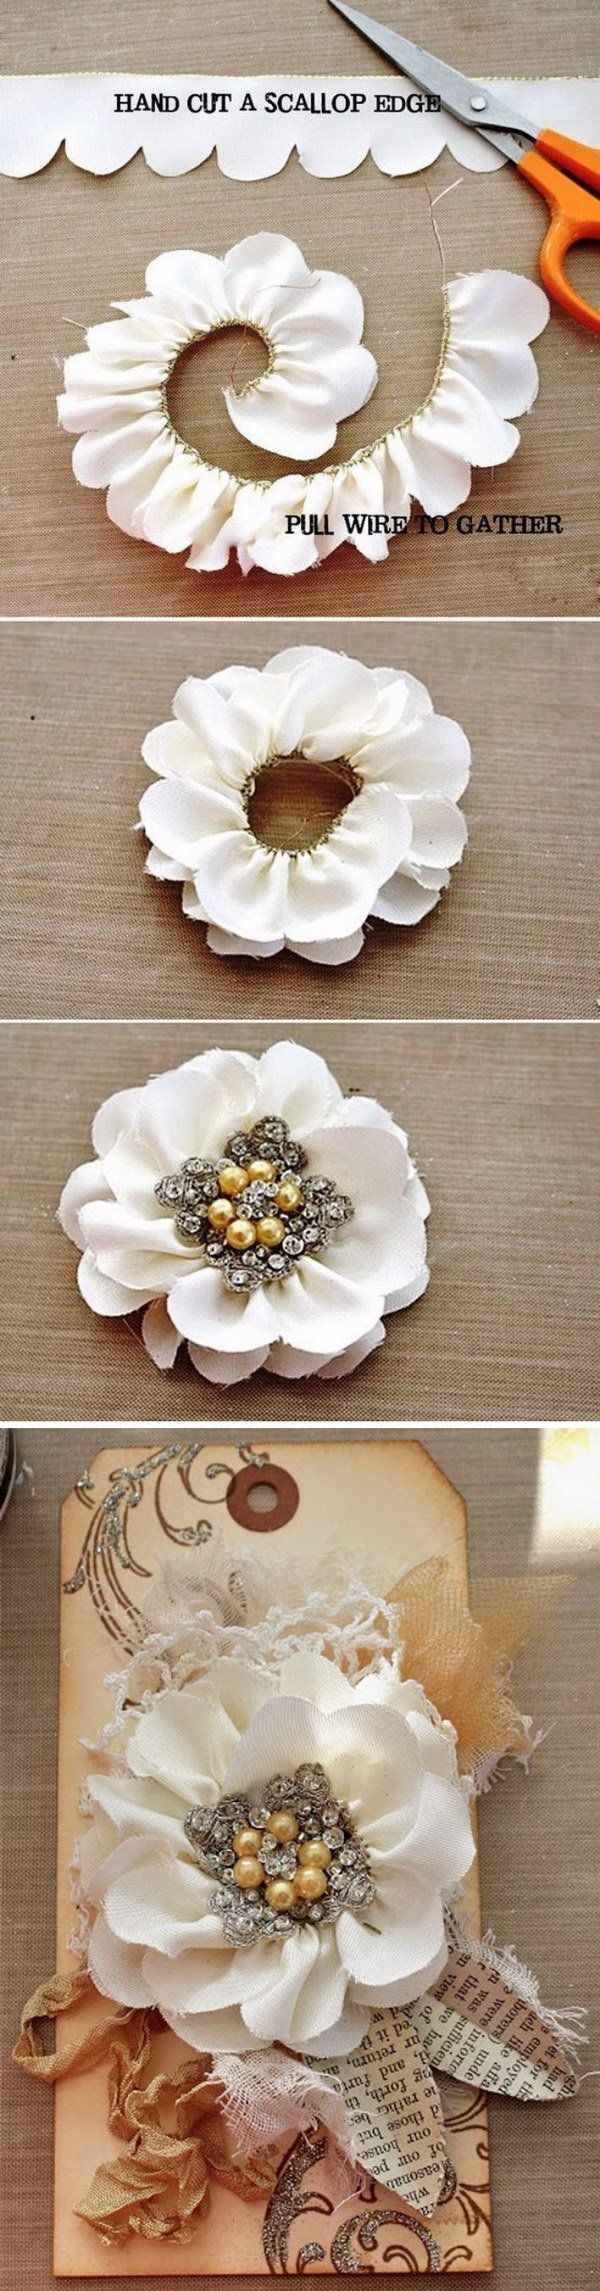 Diy shabby chic home decor - Best 25 Shabby Chic Decor Ideas On Pinterest Shabby Chic Bedroom Vintage And Country Chic